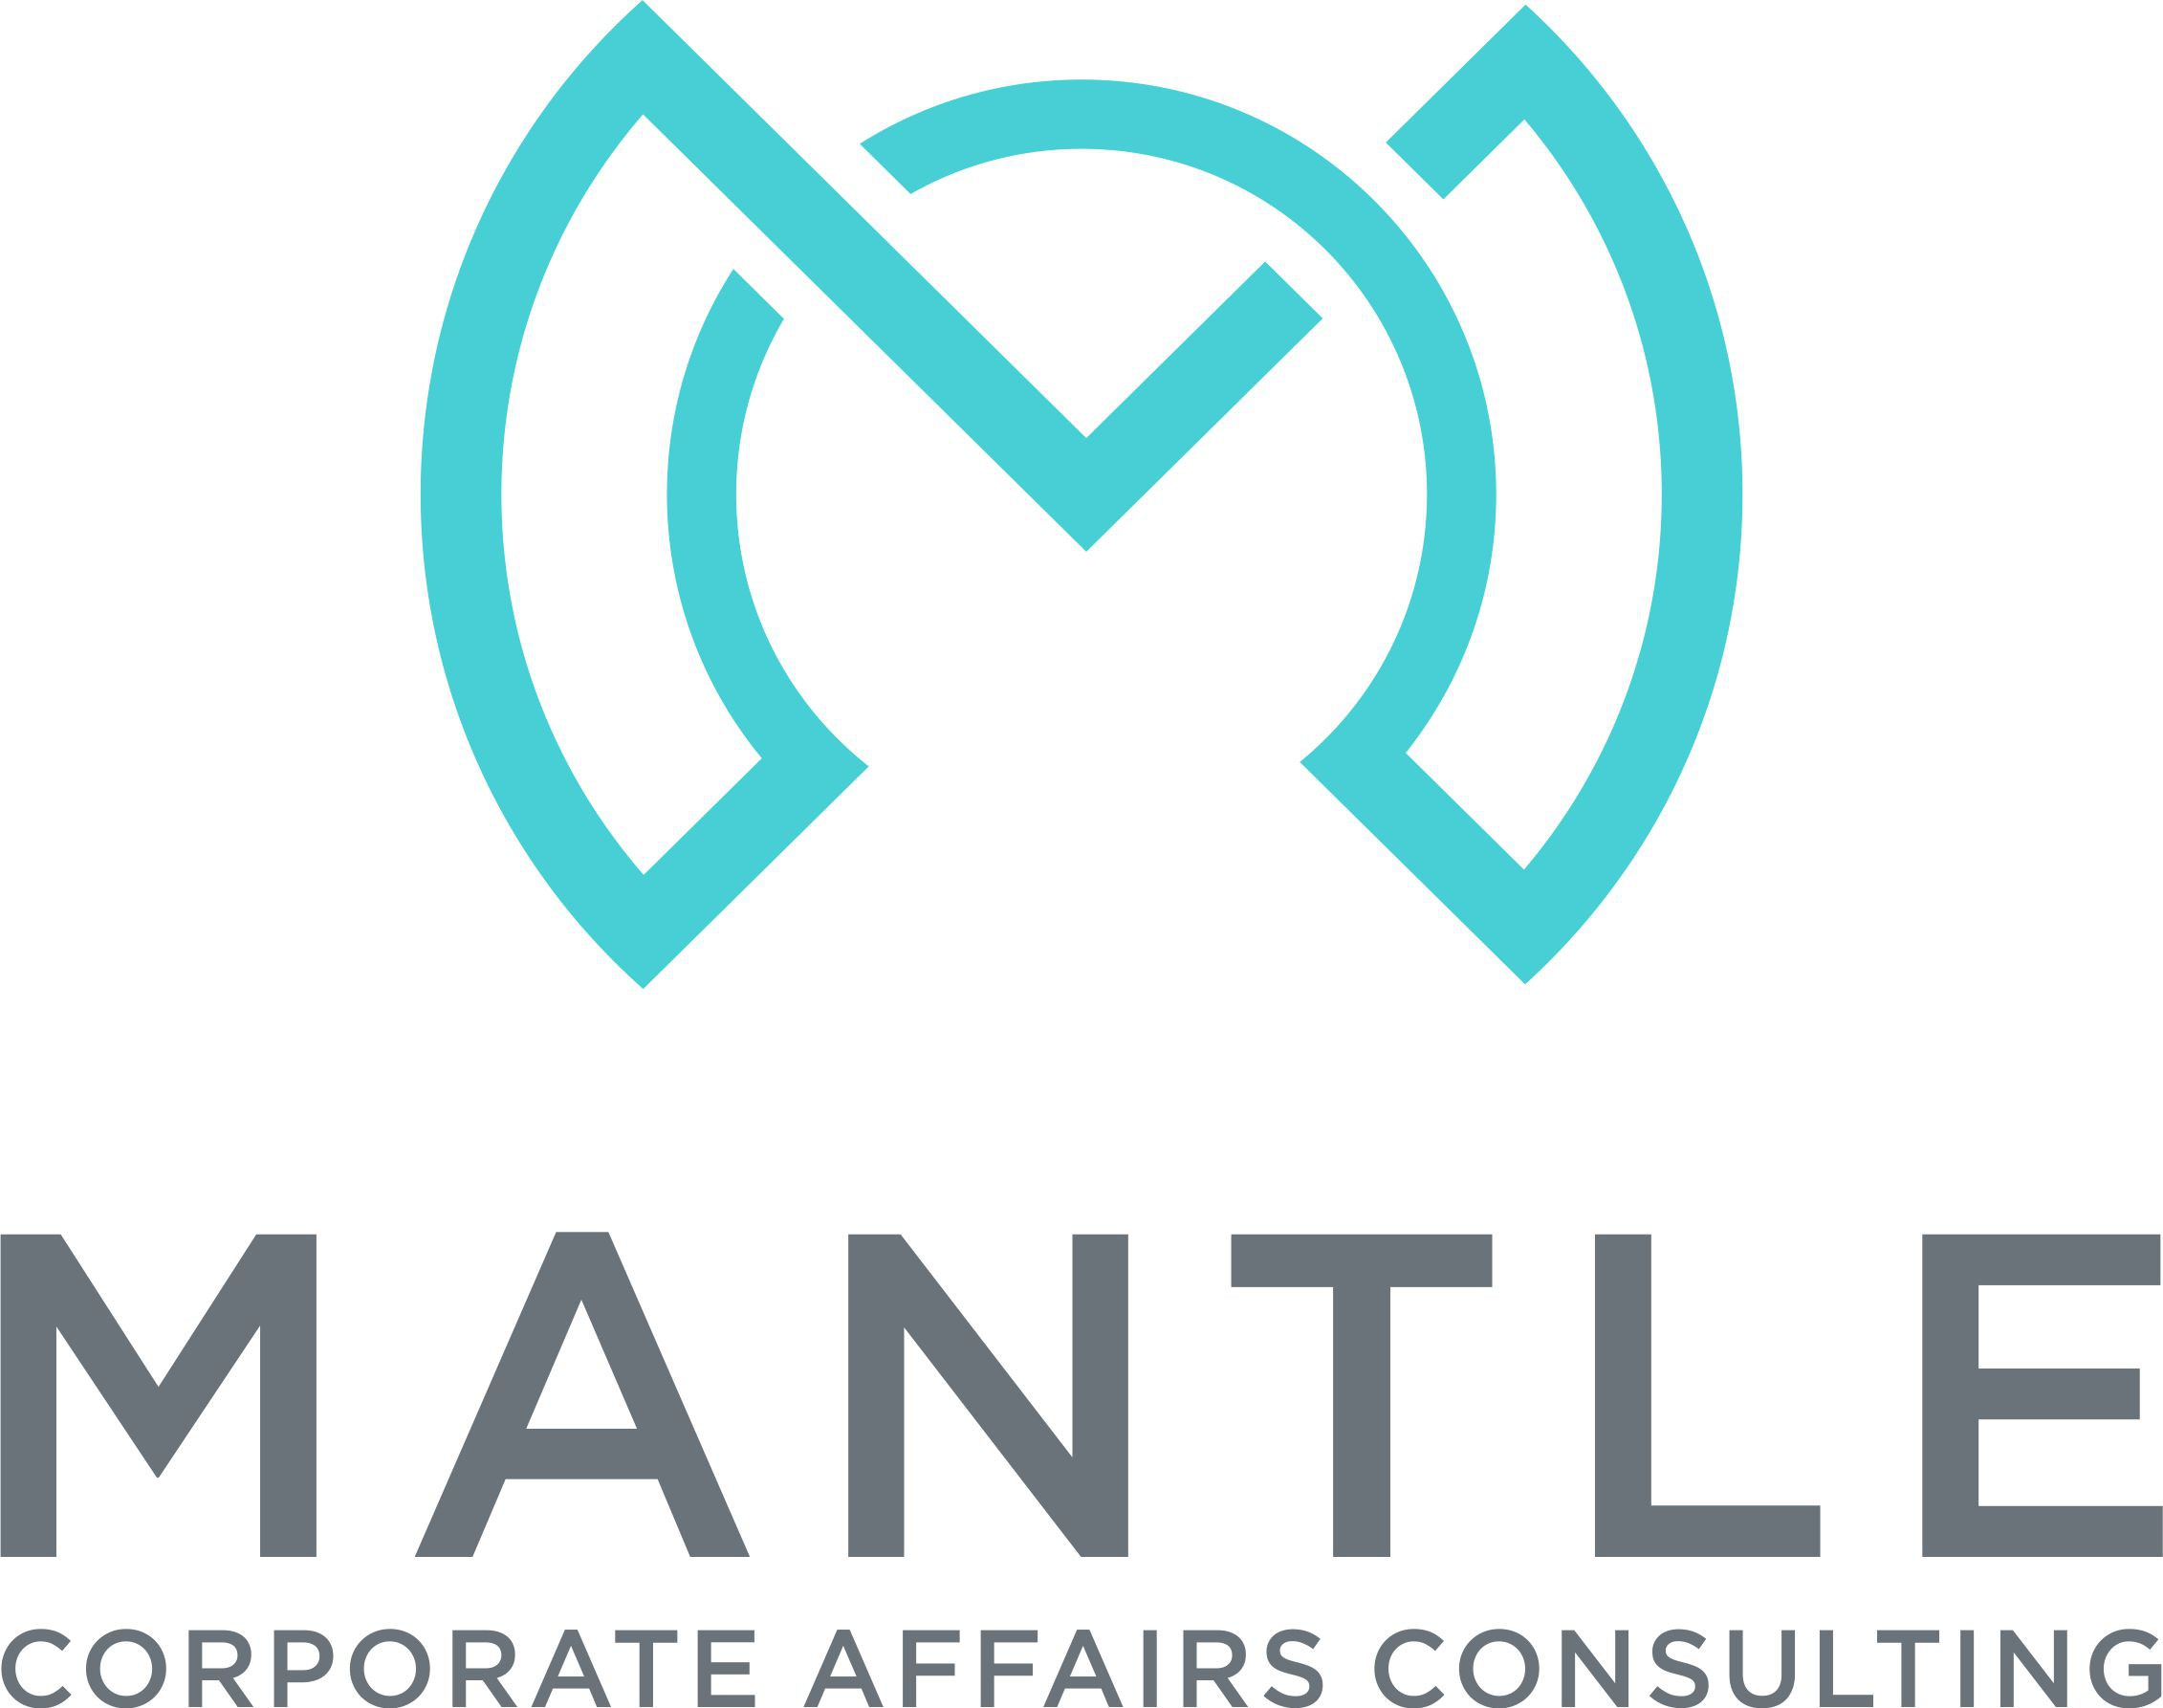 New consultancy needs a logo that portrays trust and experience.